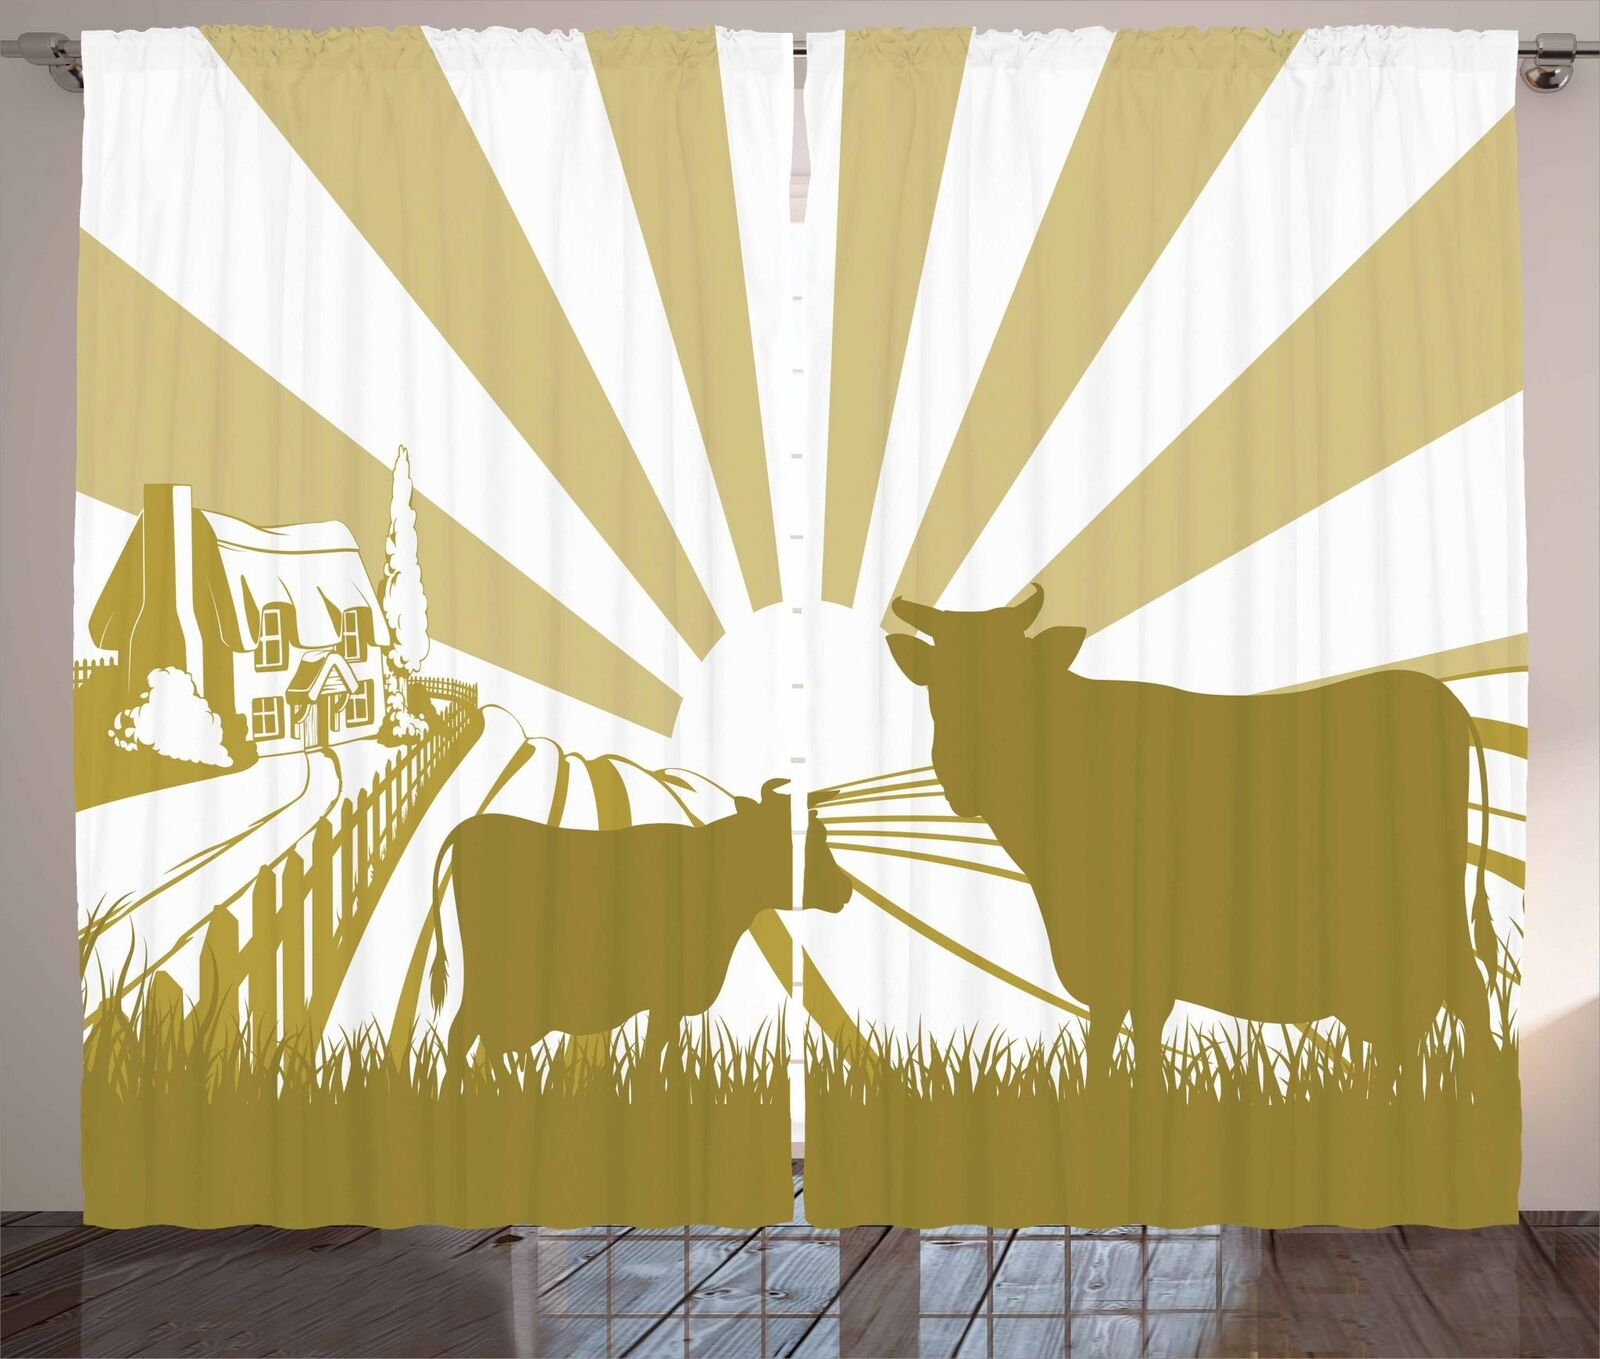 Cattle Curtains 2 Panel Set for Decor 5 Dimensiones Available Window Drapes